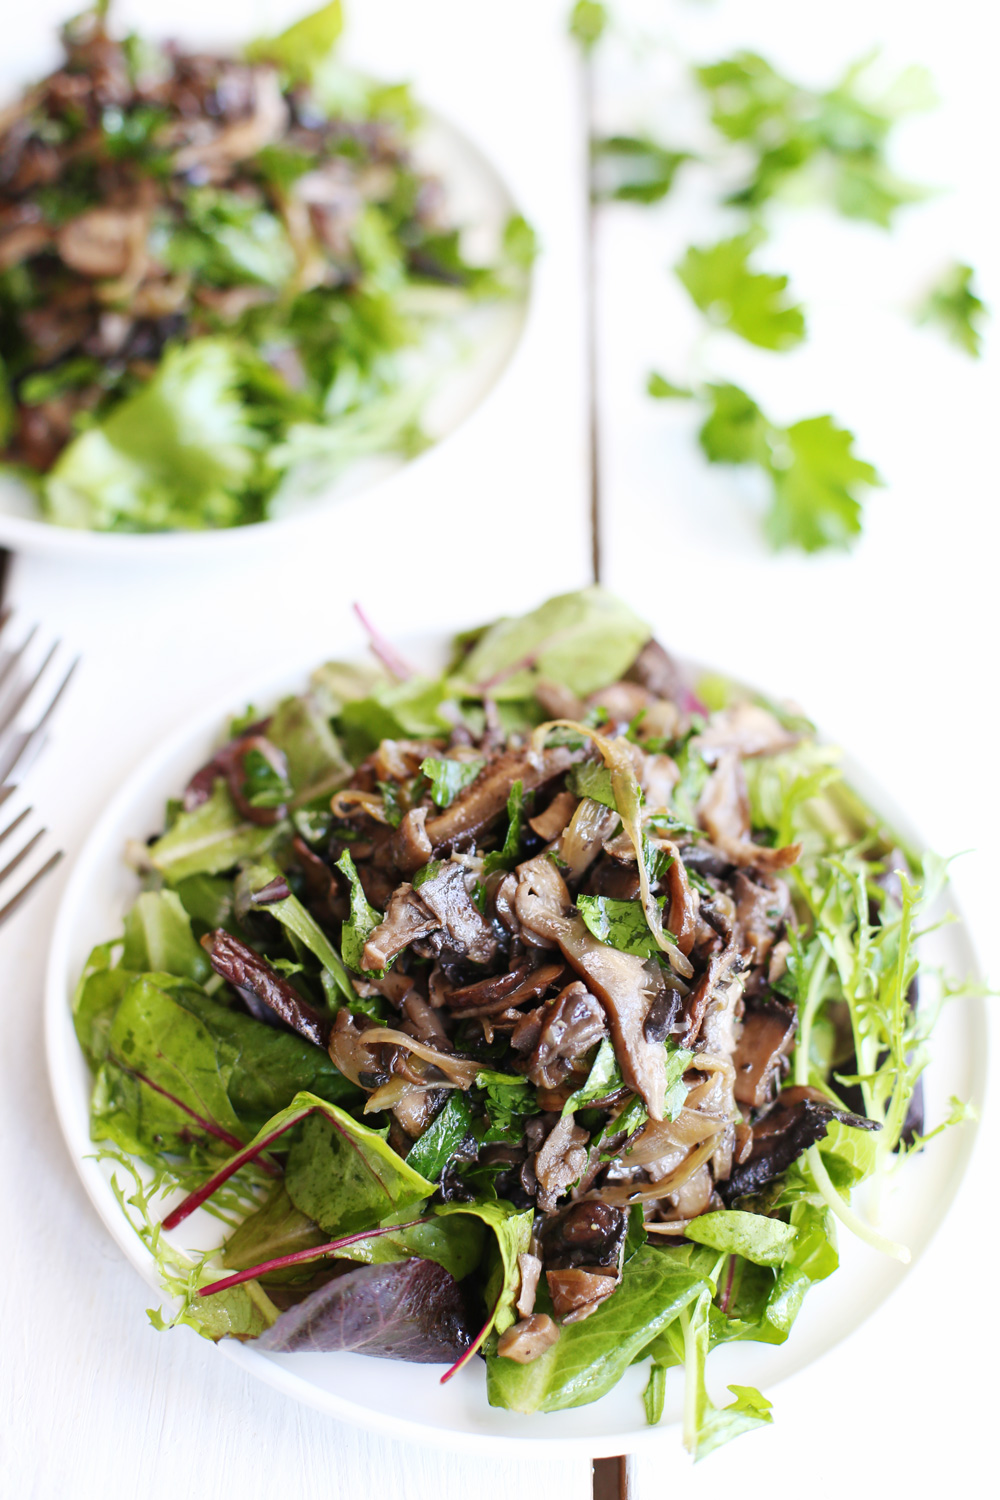 Mixed Mushrooms Salad